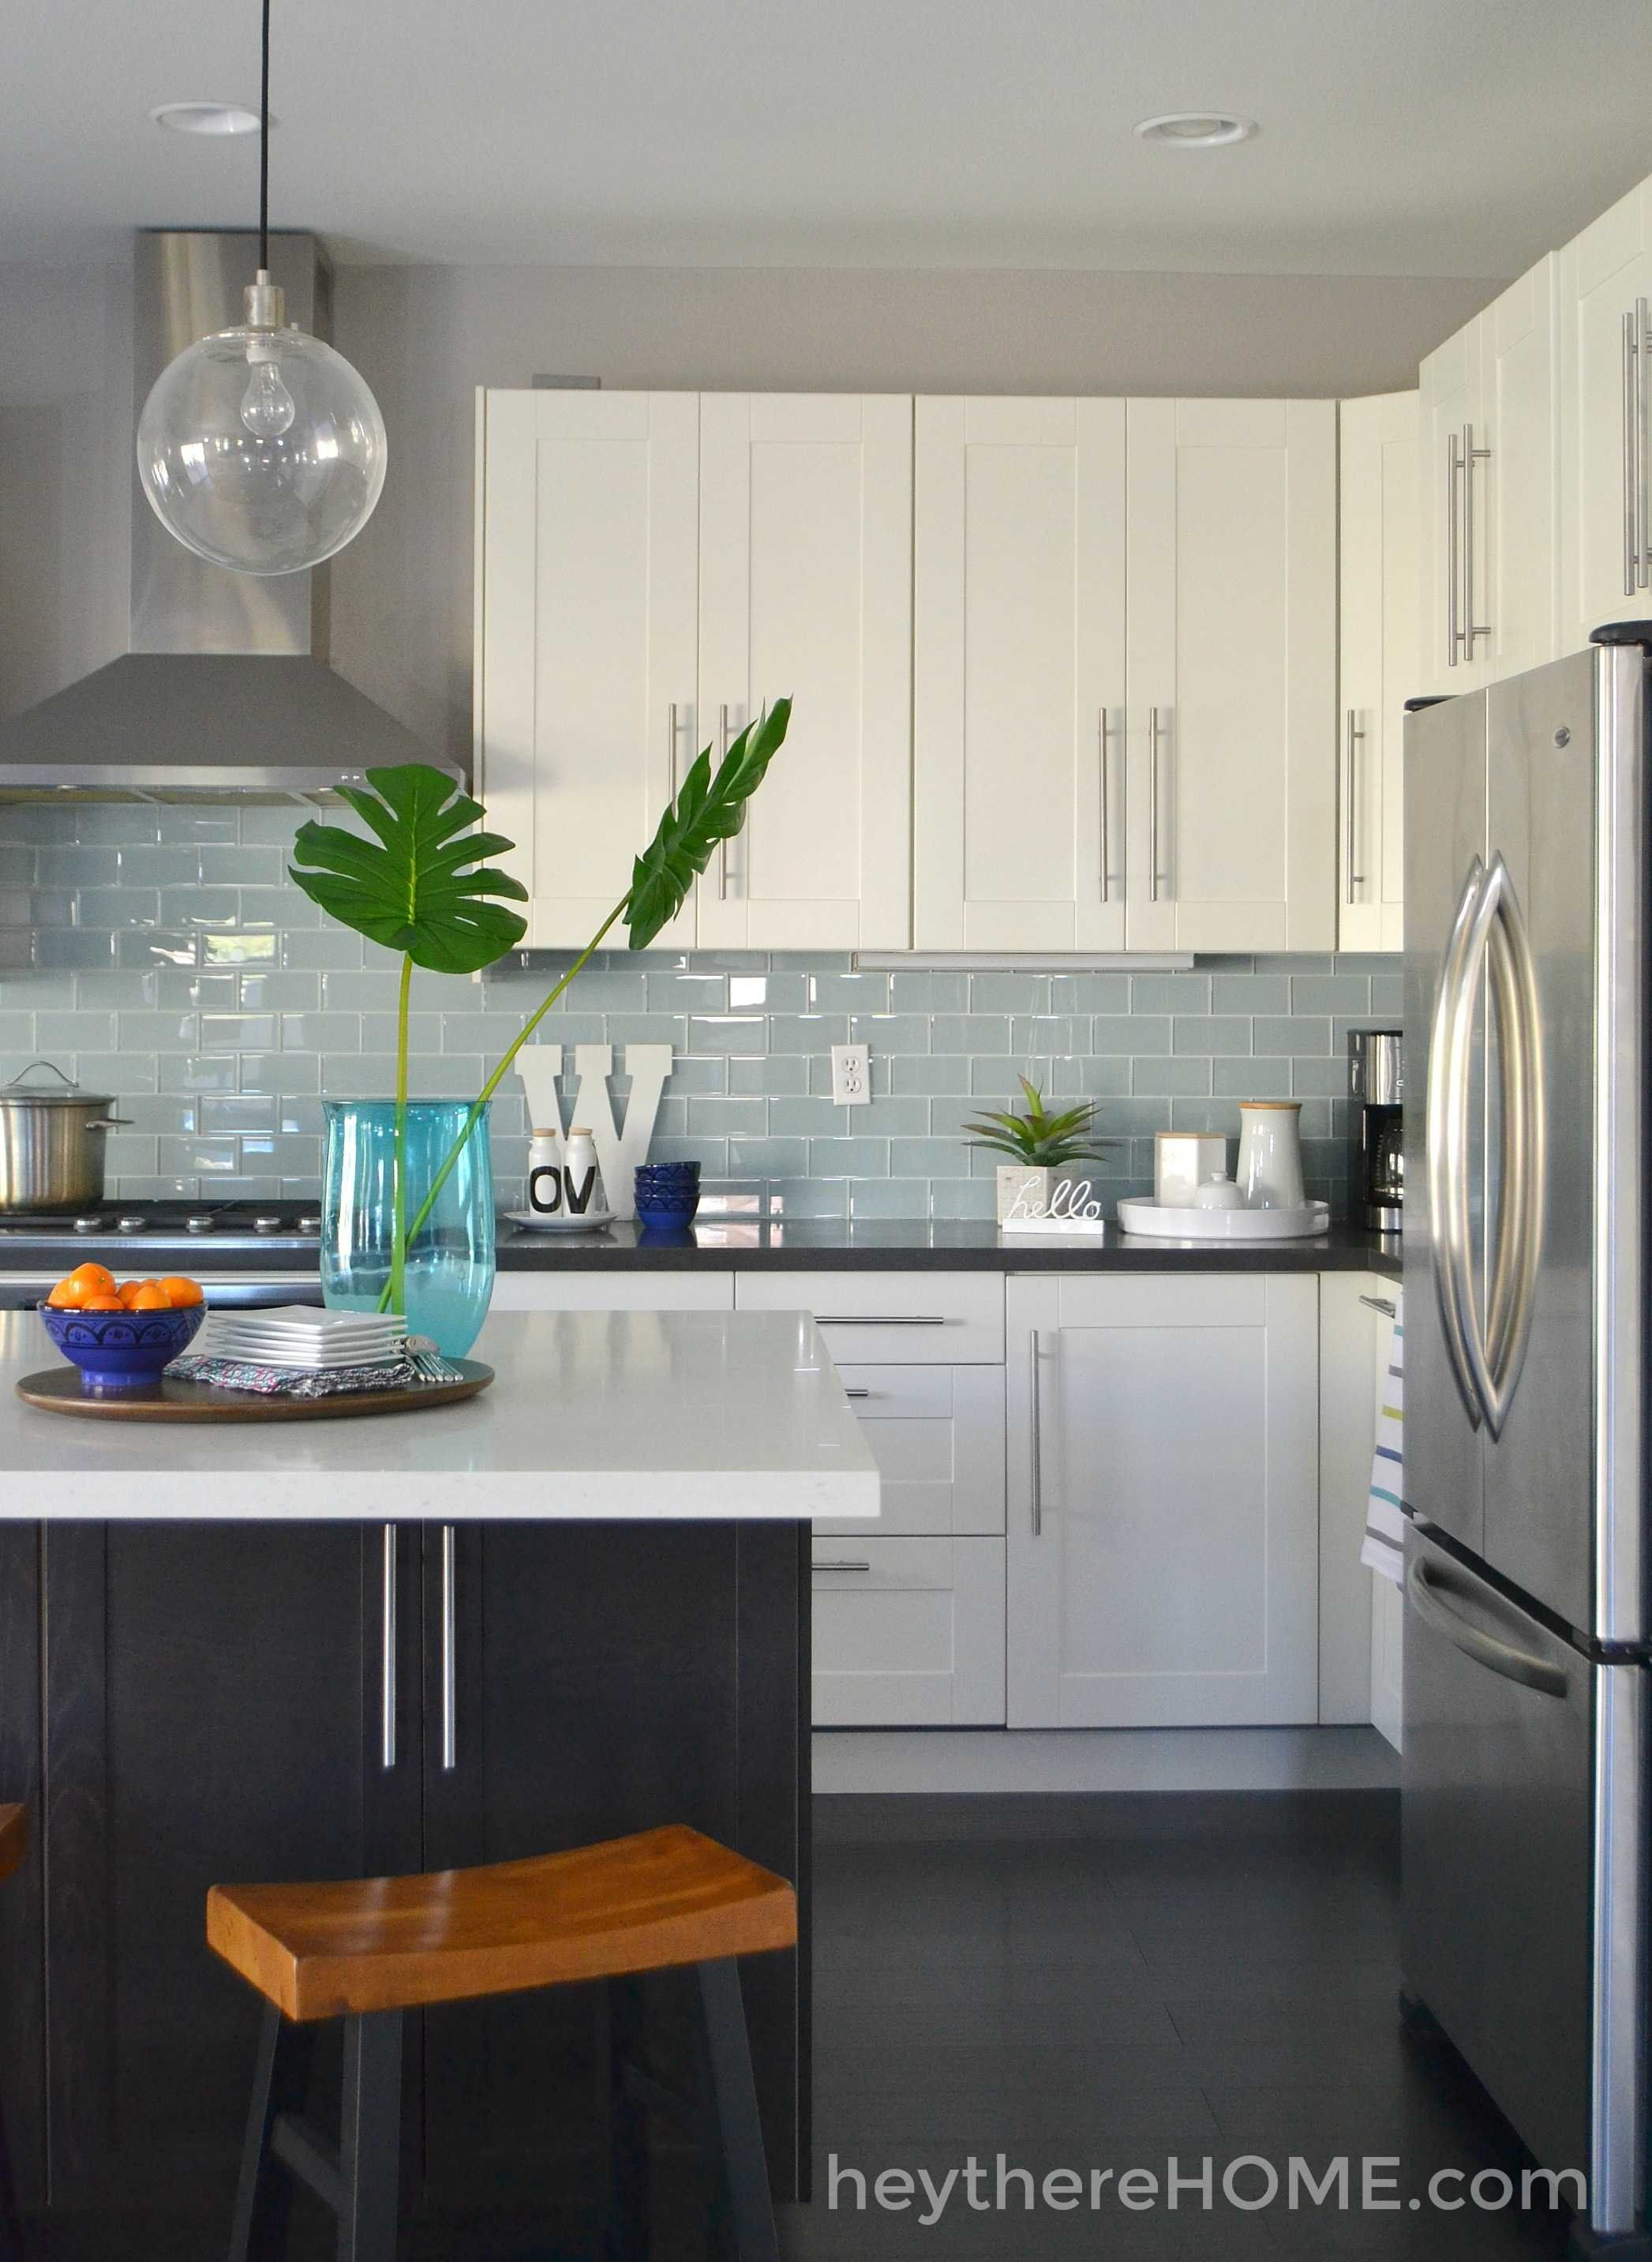 Kitchen Remodel Before and After + 11 Ideas That Add Value